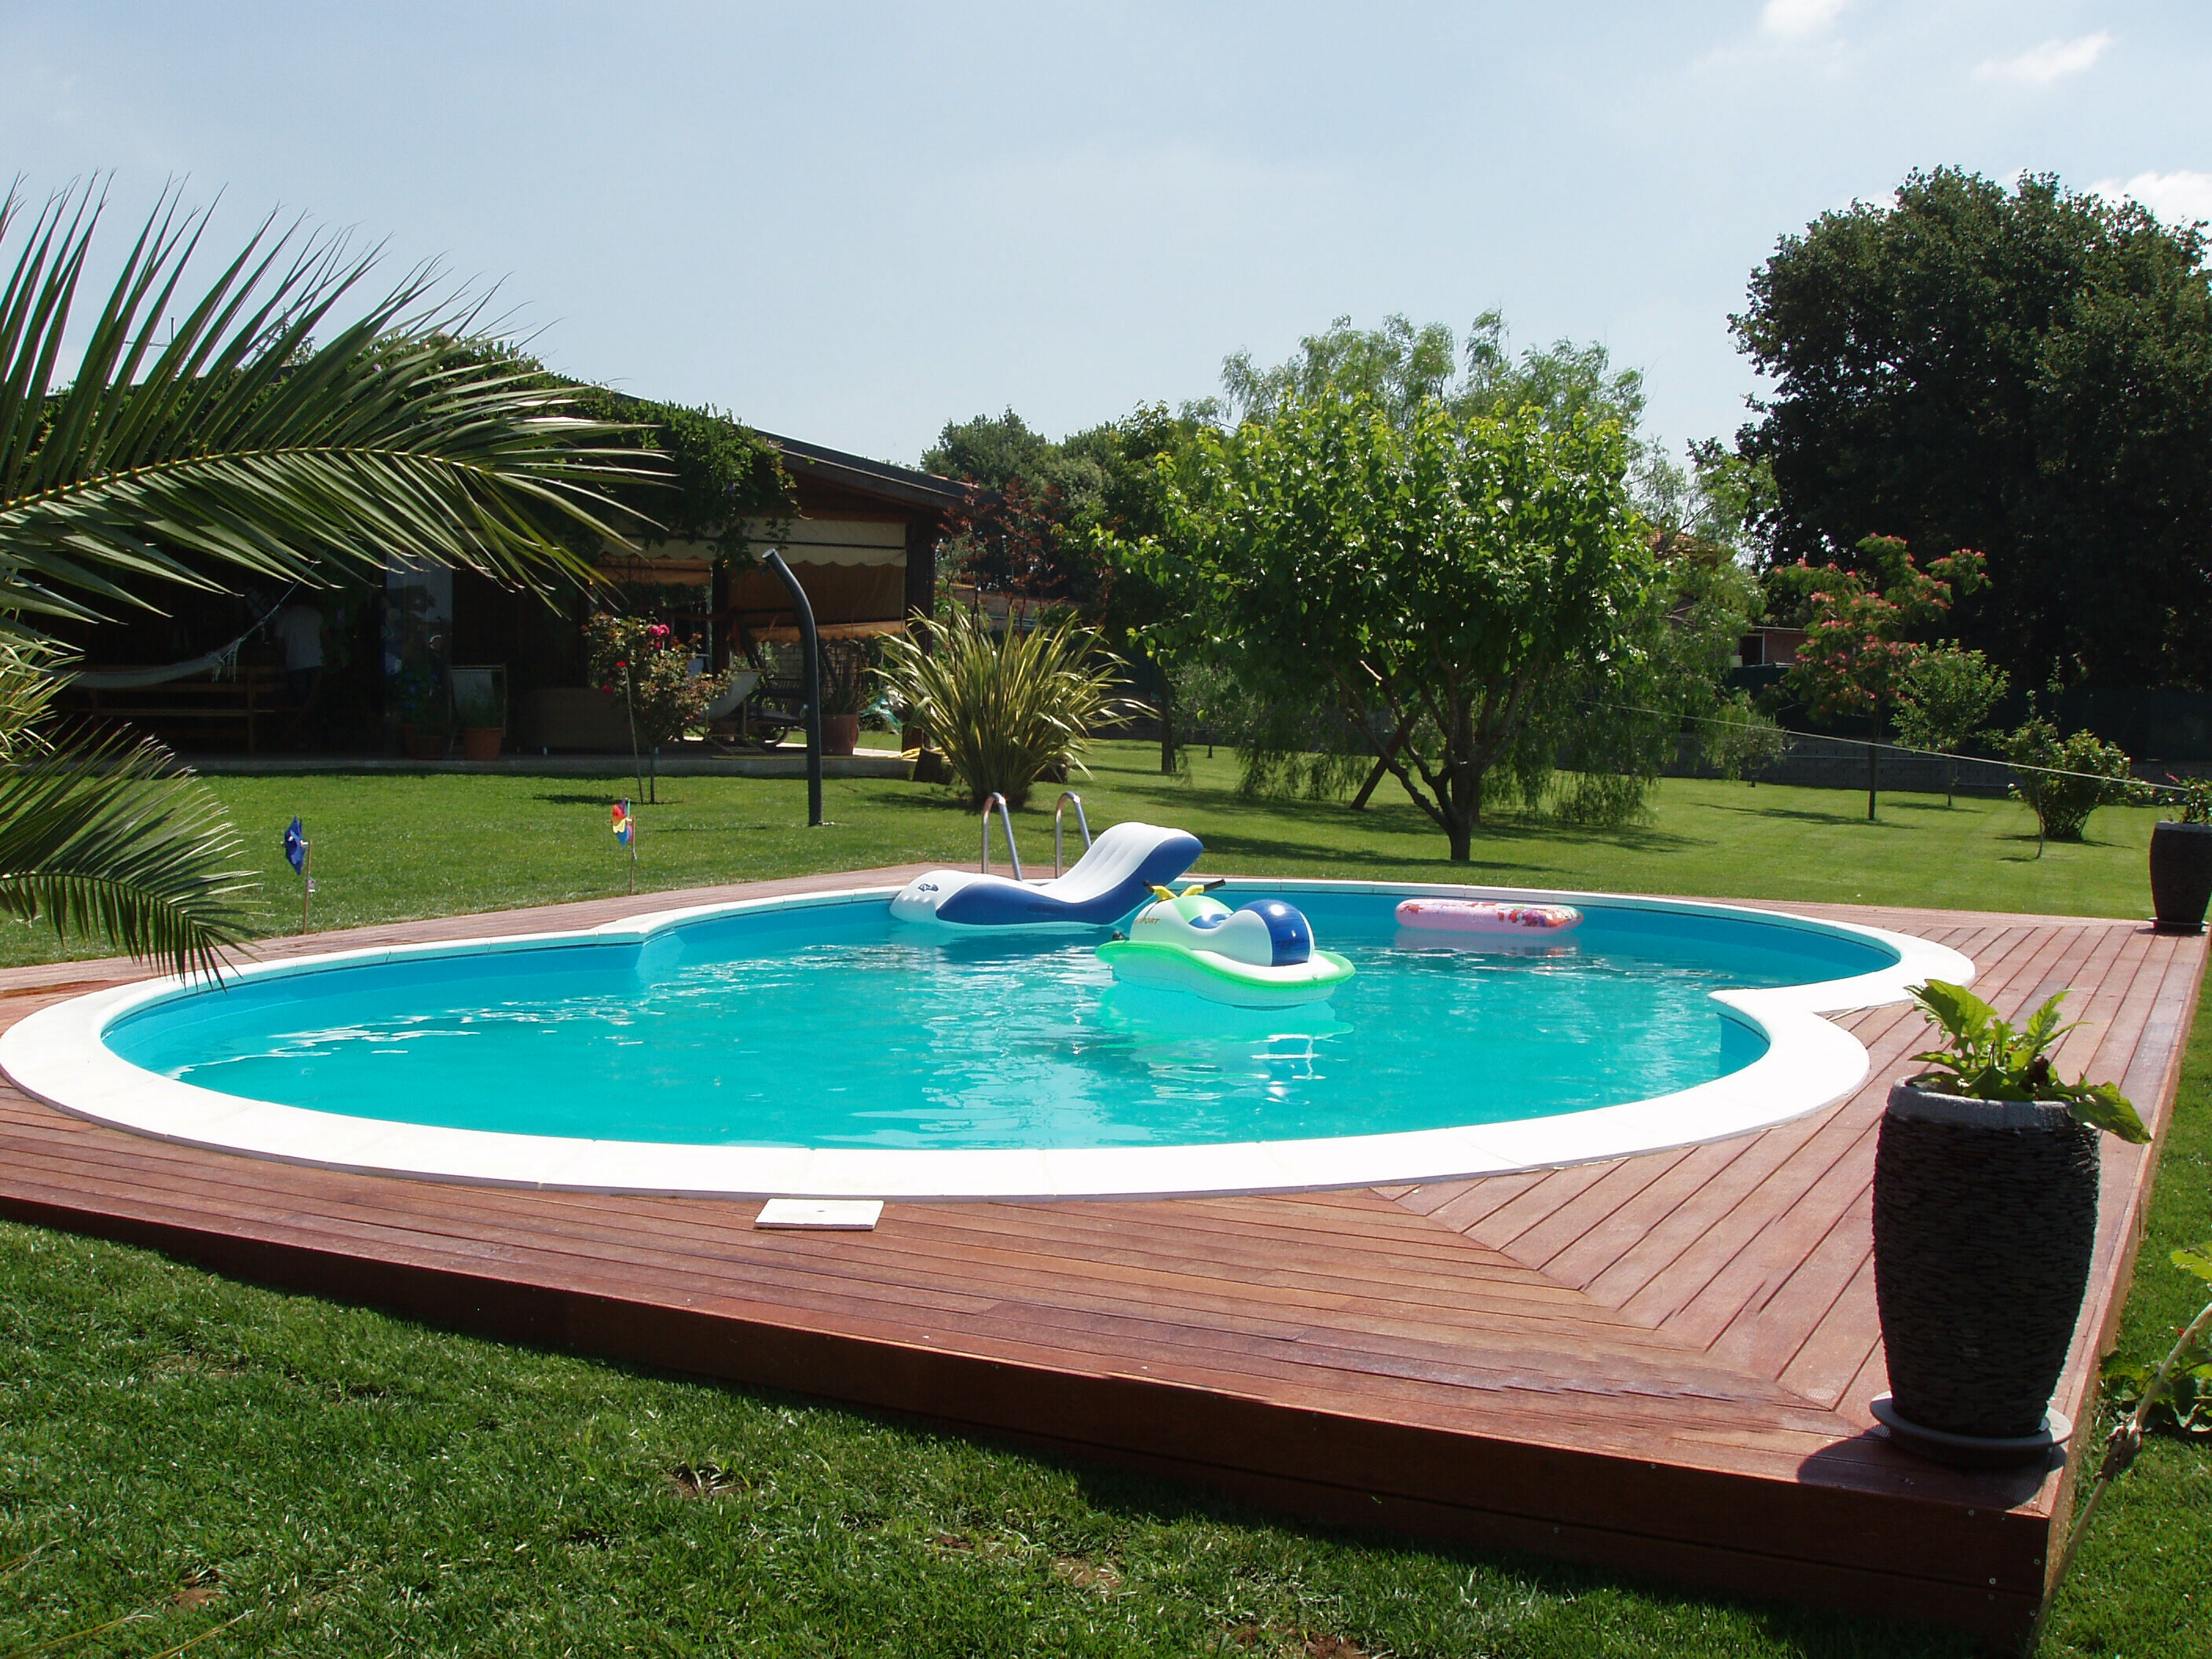 Piscine interrate jollygame piscine e accessori - Foto piscine interrate ...